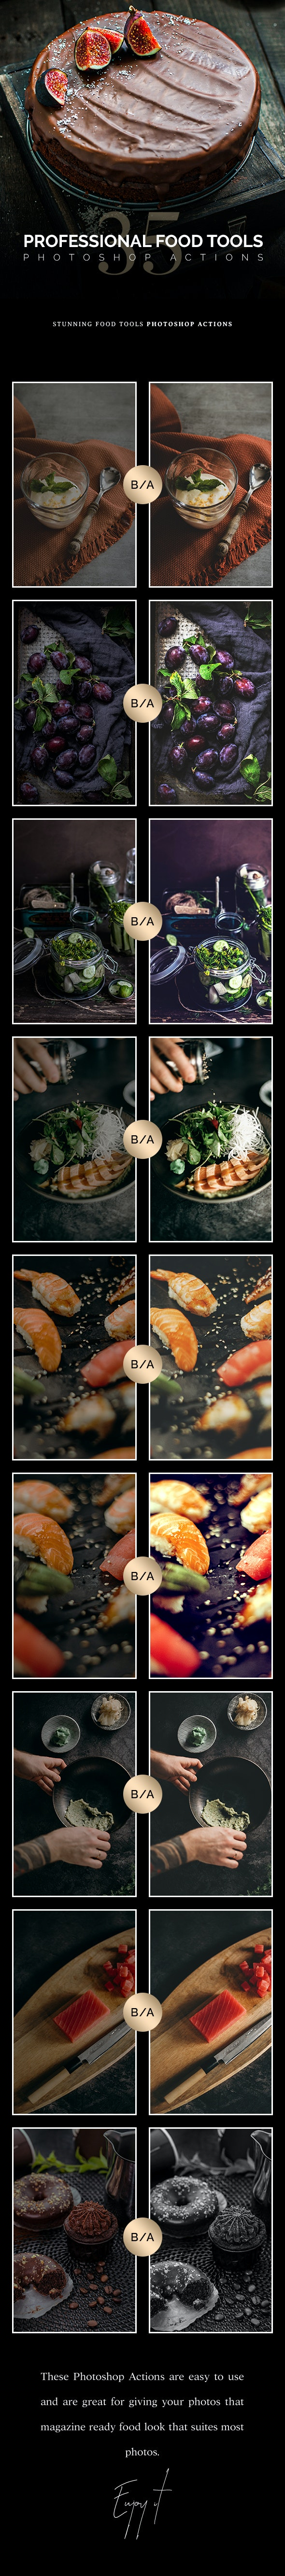 35 Food Tools Photoshop Actions - Photo Effects Actions